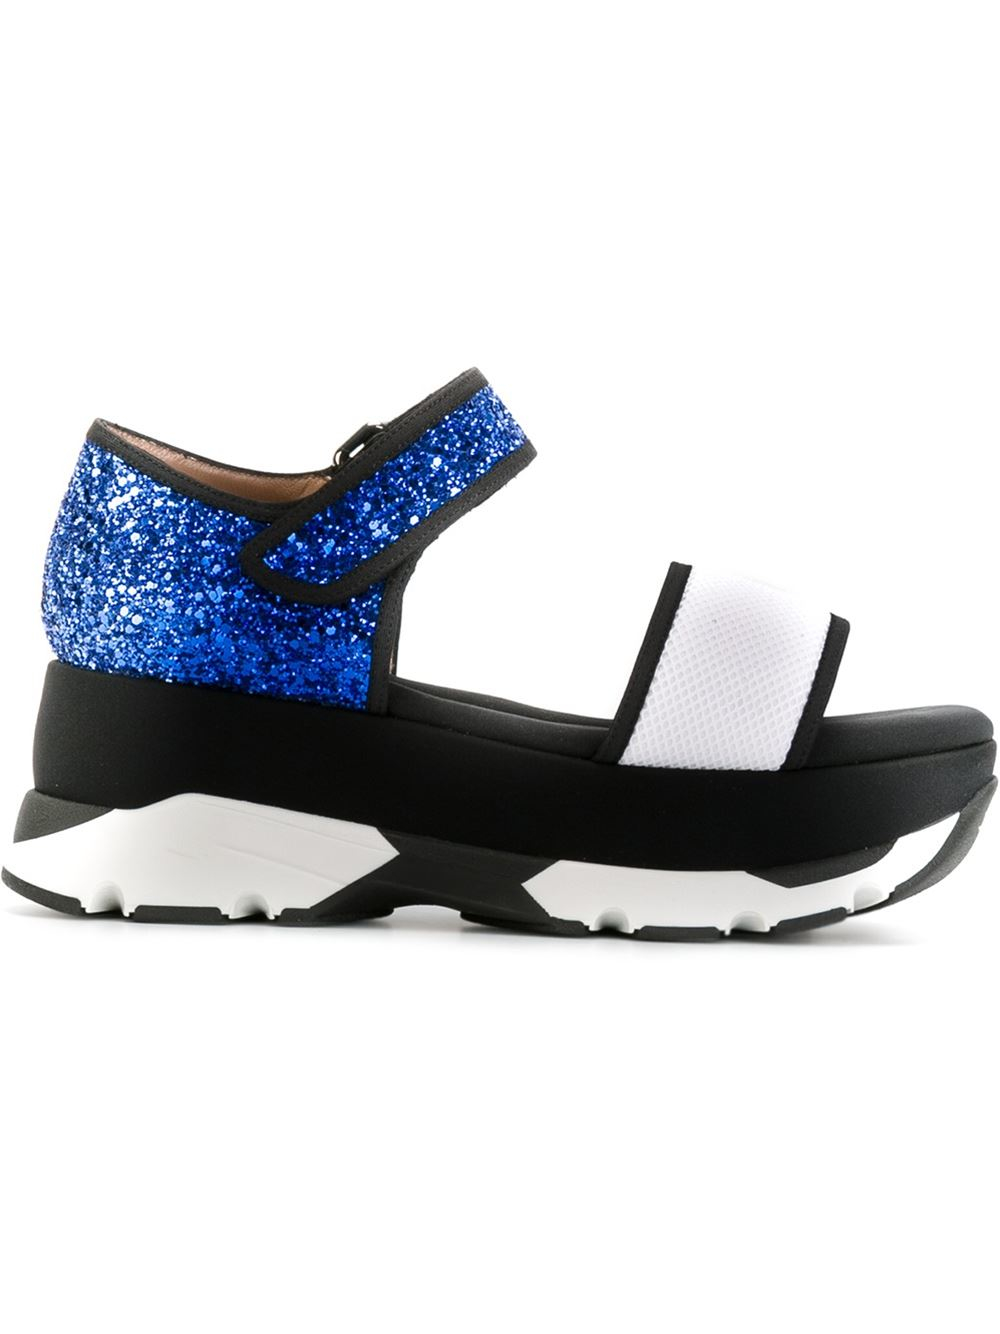 marni glitter platform sandals in black lyst